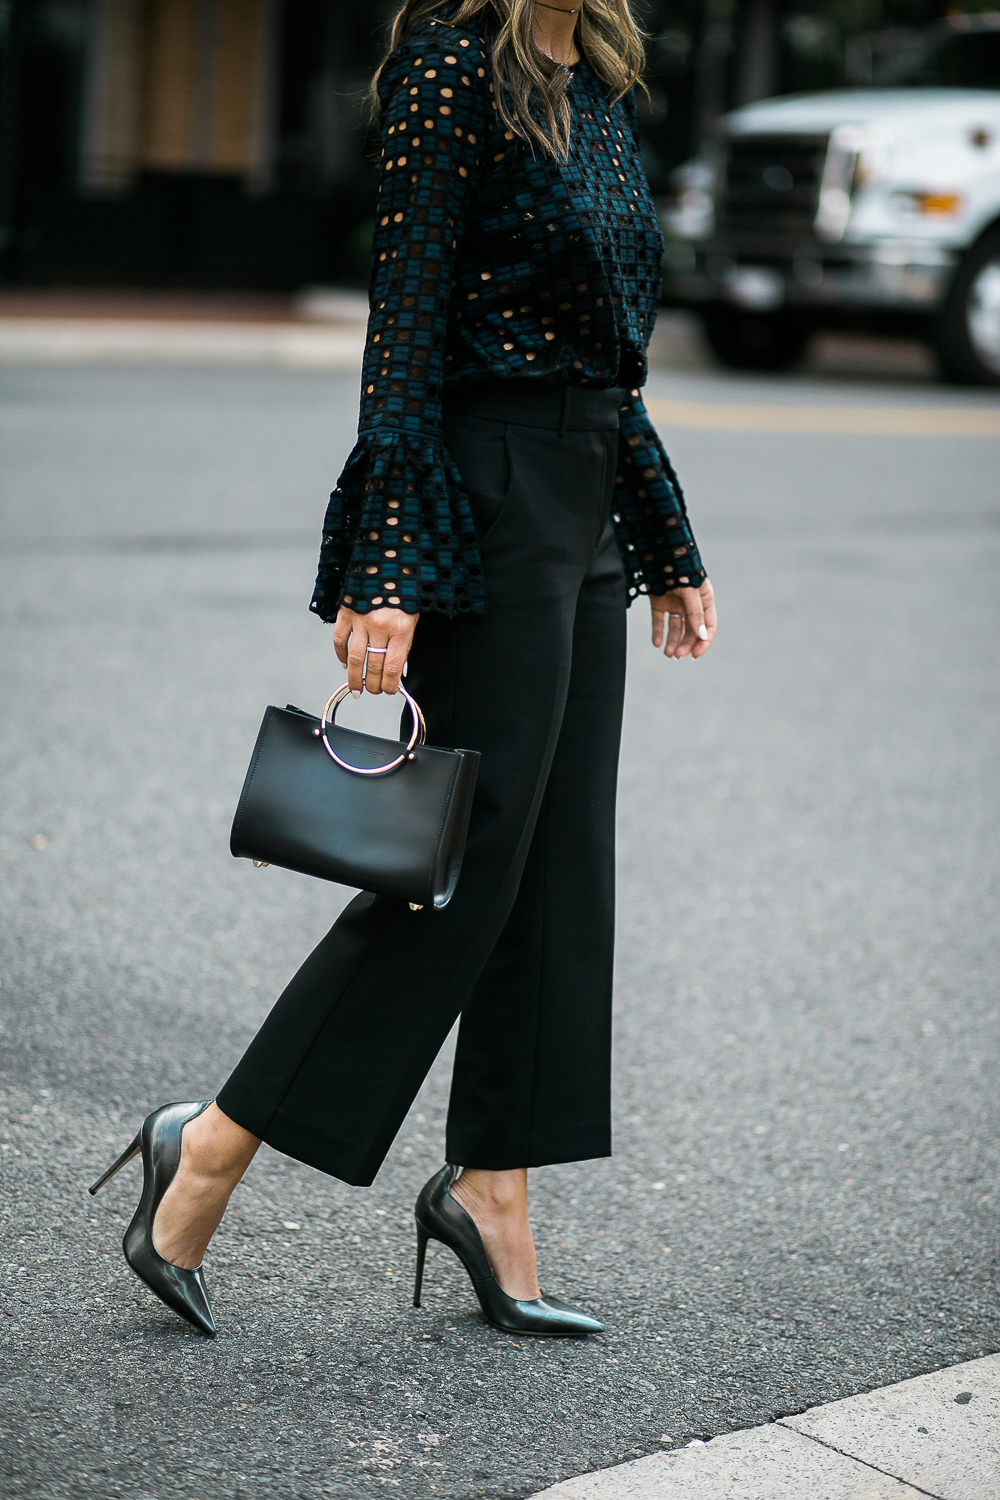 Style MBA wears Ann Taylor Tailored Pants and Top